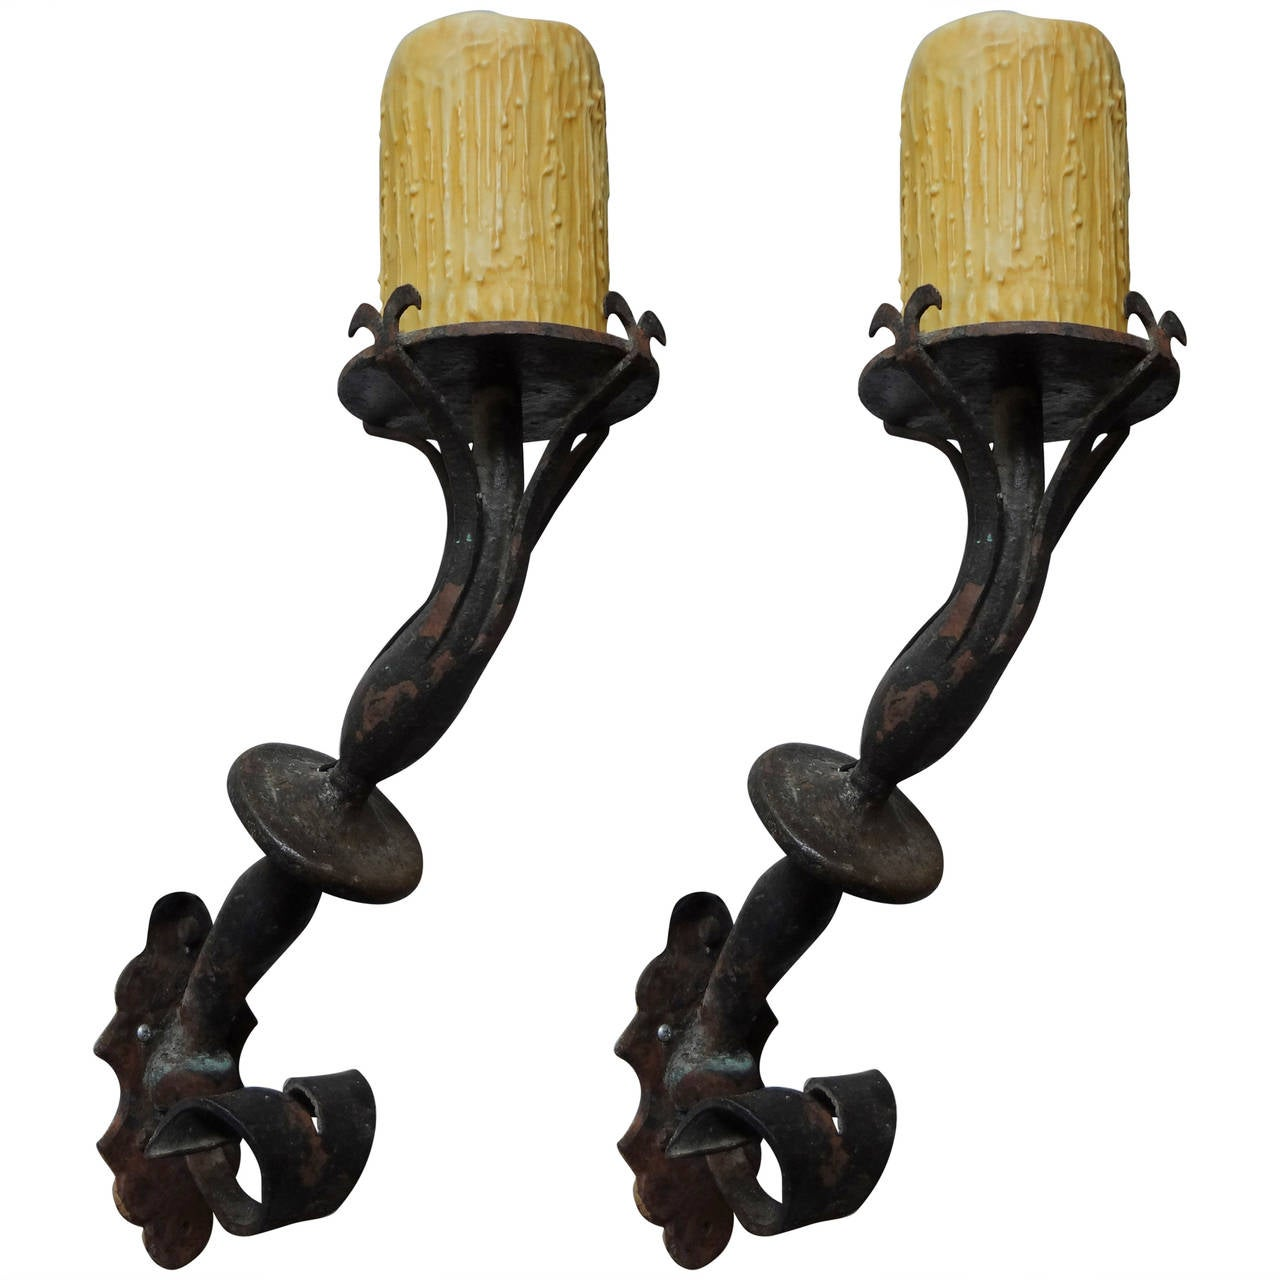 Pair of Antique French Wrought Iron Torch Sconces